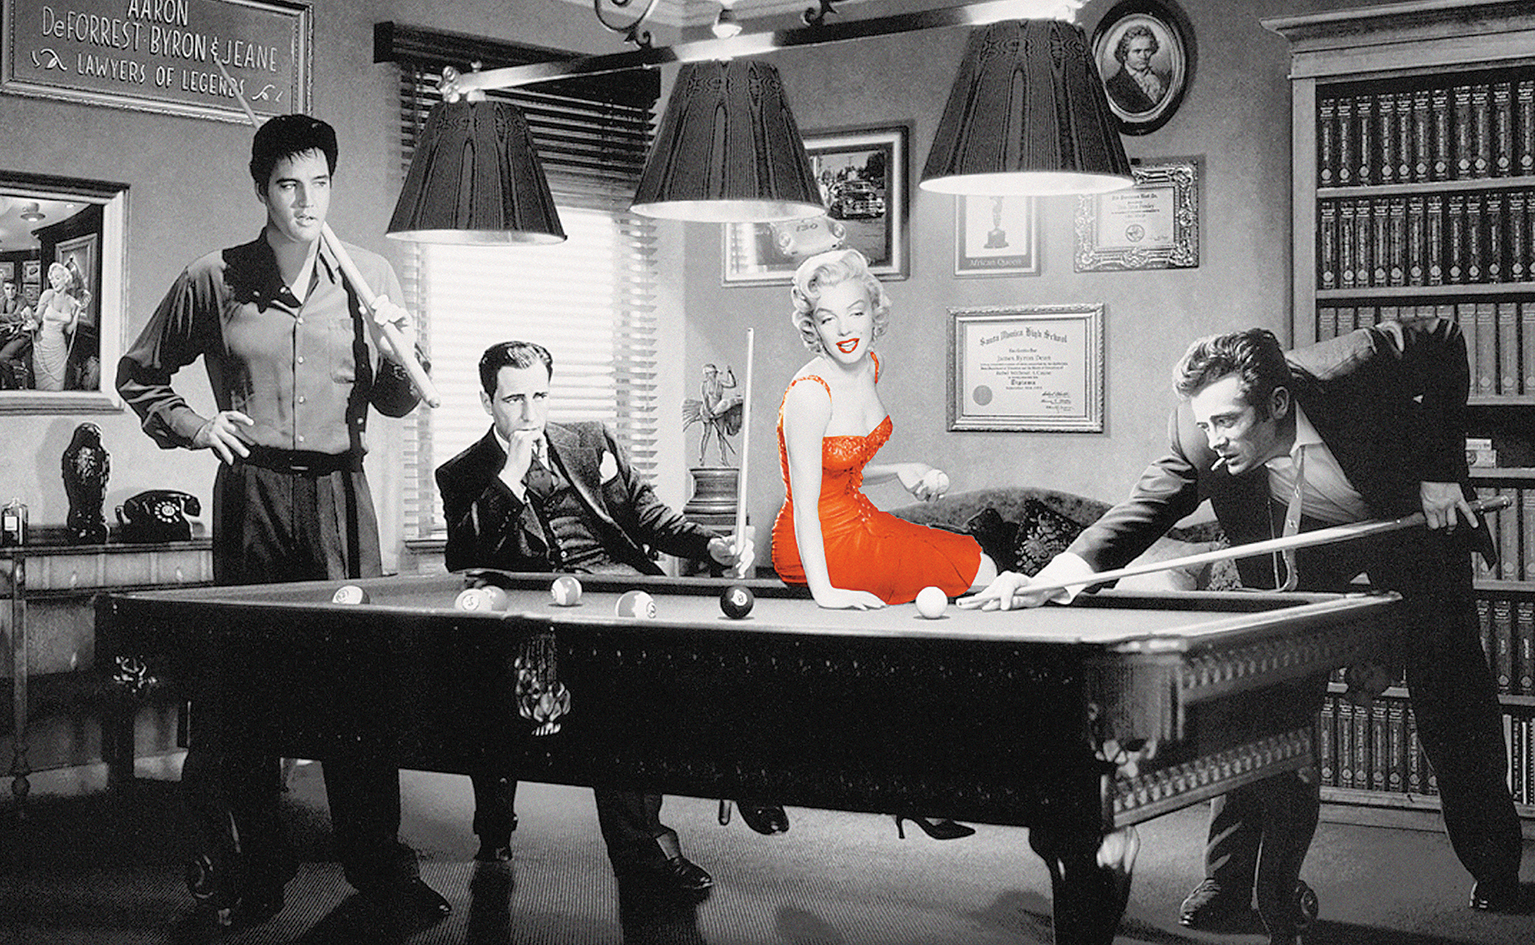 James Dean Elvis Presley Marilyn Monroe Red Dress Billiards Table